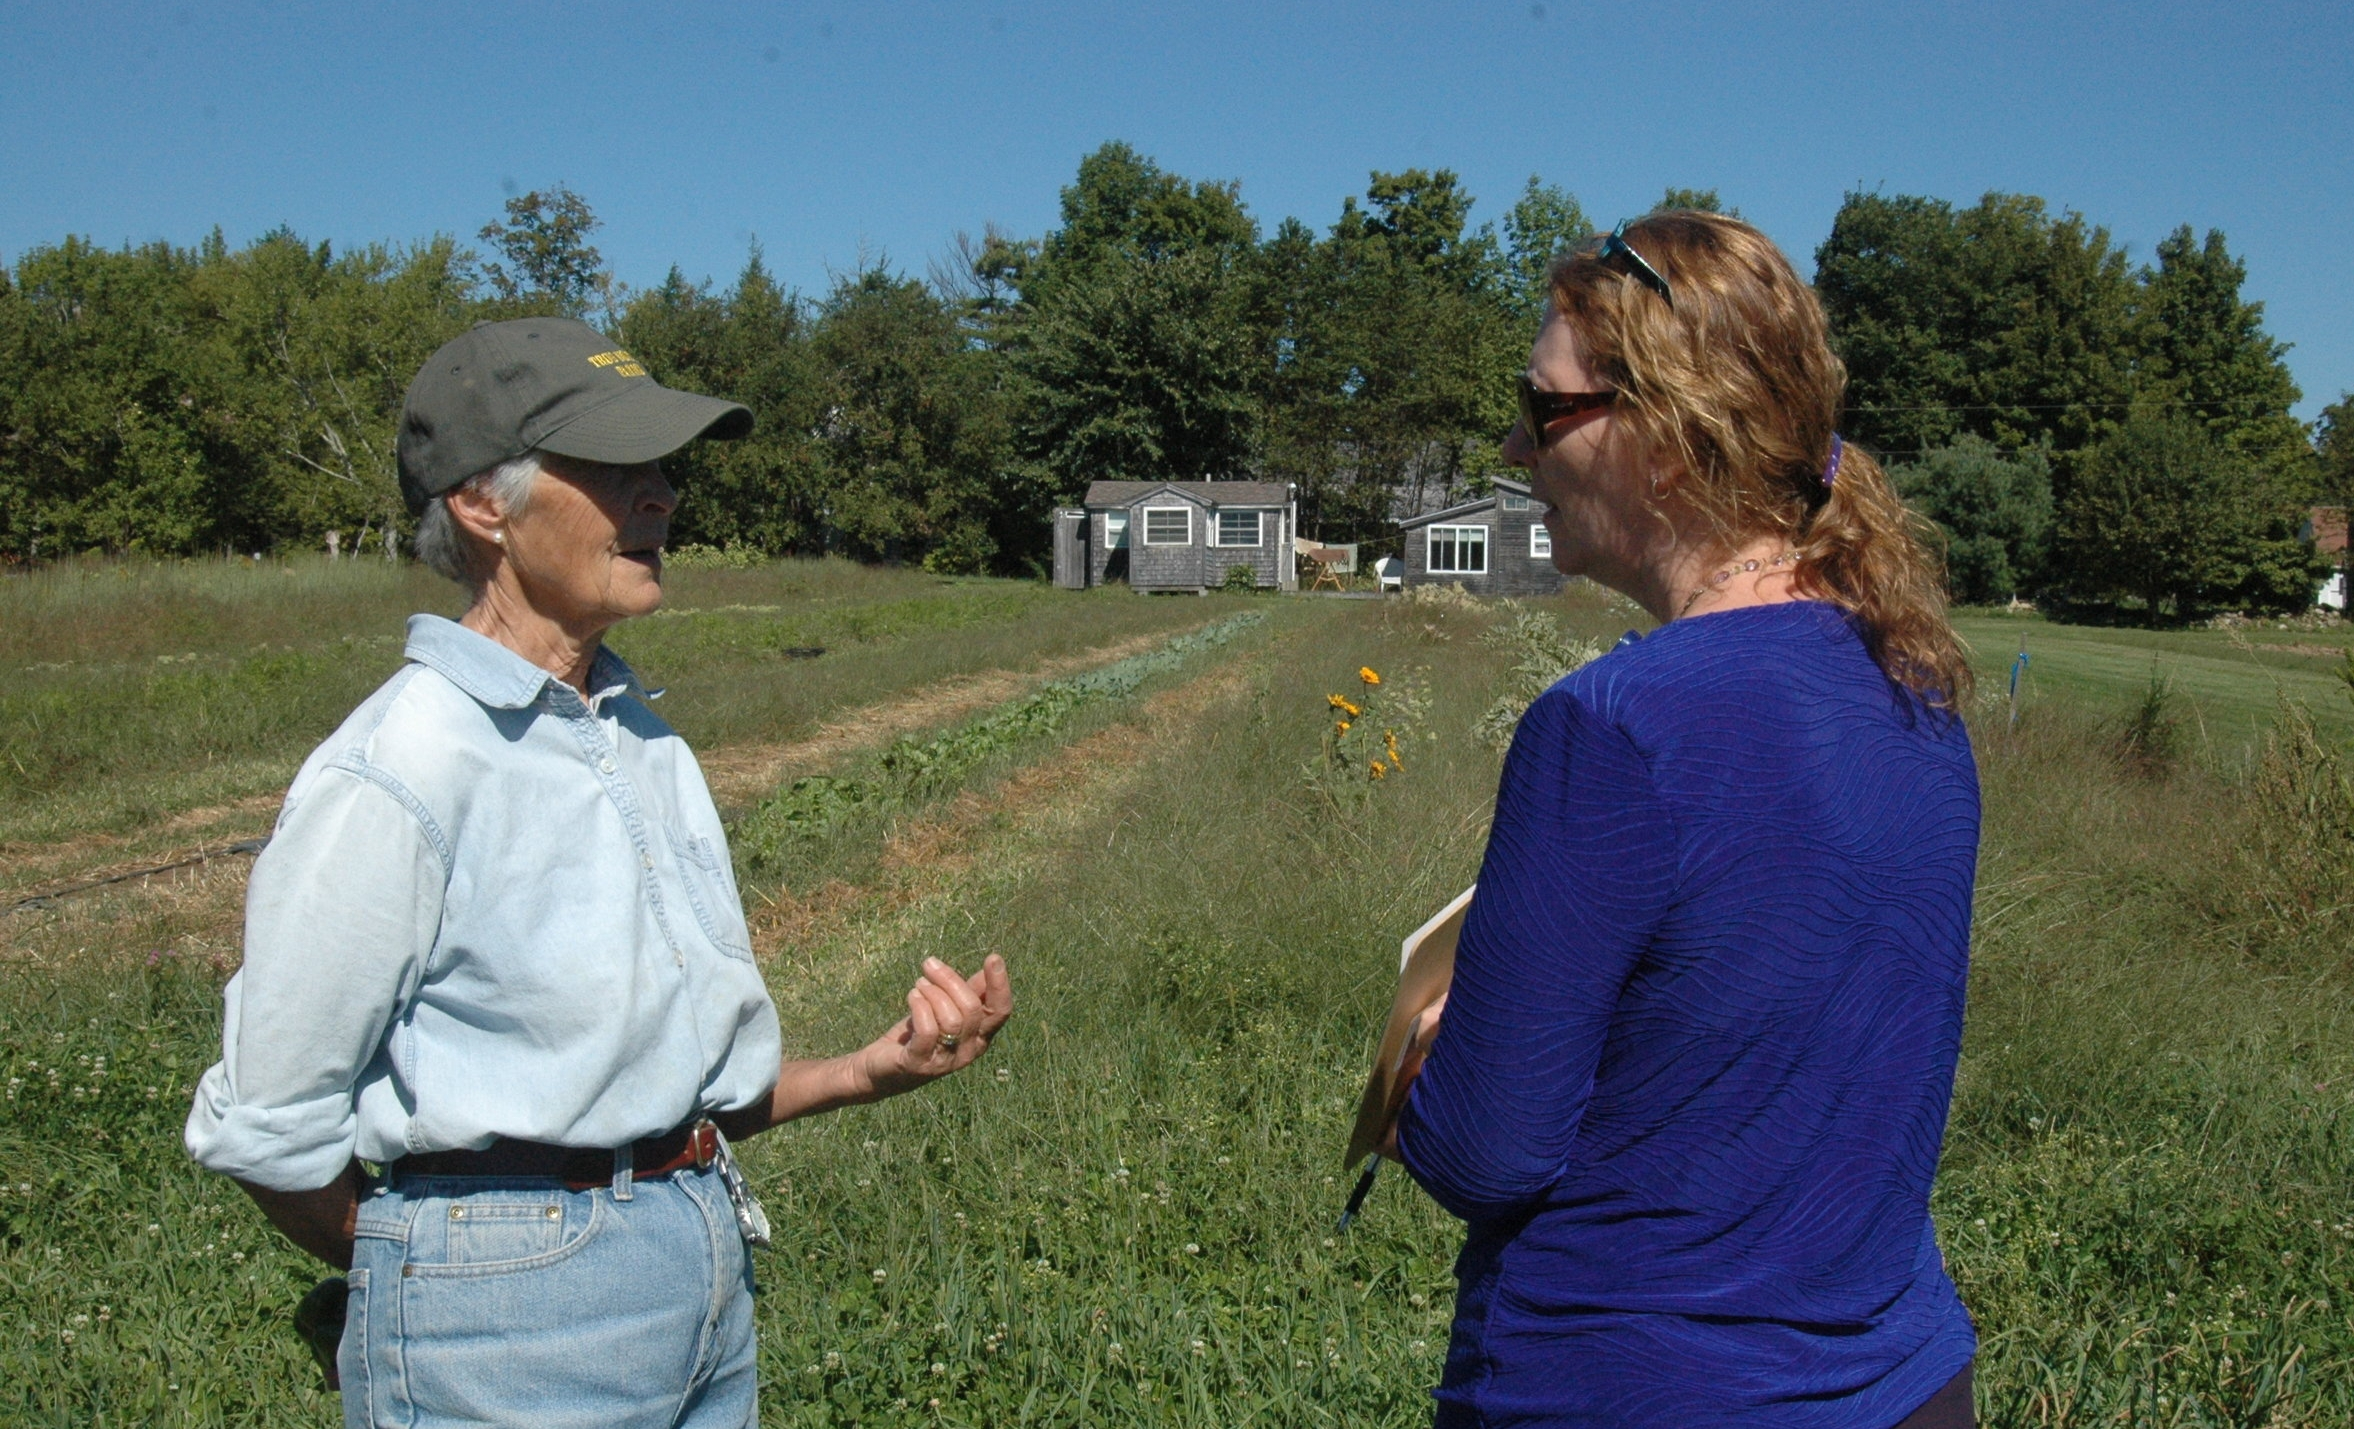 Sheila Costello (Right), Nutrition Director at Waldo County General Hospital, meets with Farmer Sarah Lincoln-Harrison at True North Farms in Montville, ME.